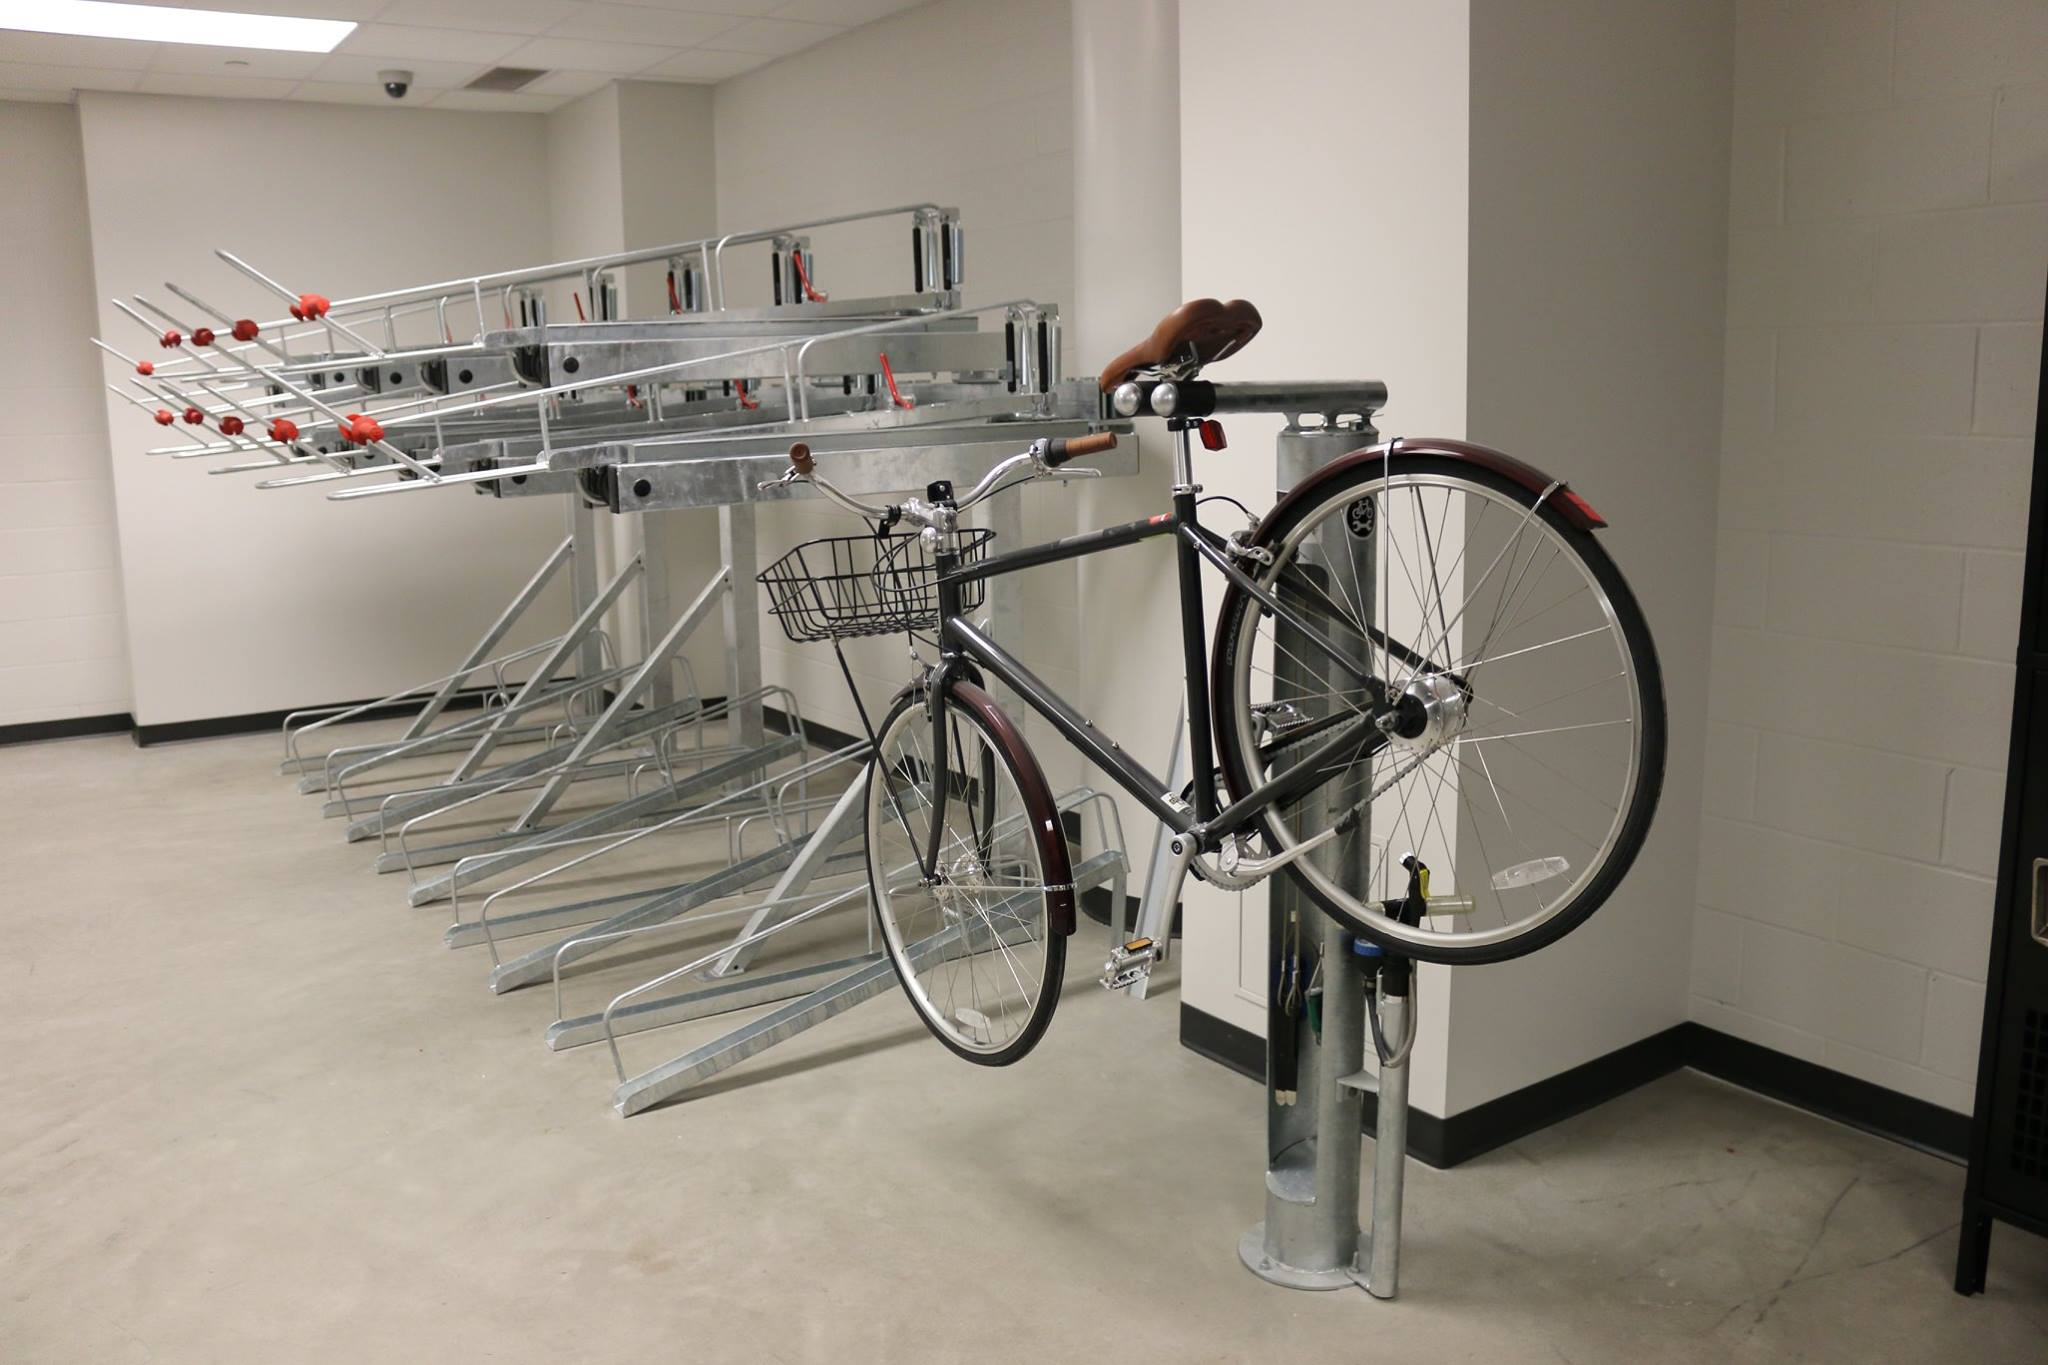 Bike Stores Mn : Bike repair stand lowertown shop st paul minnesota